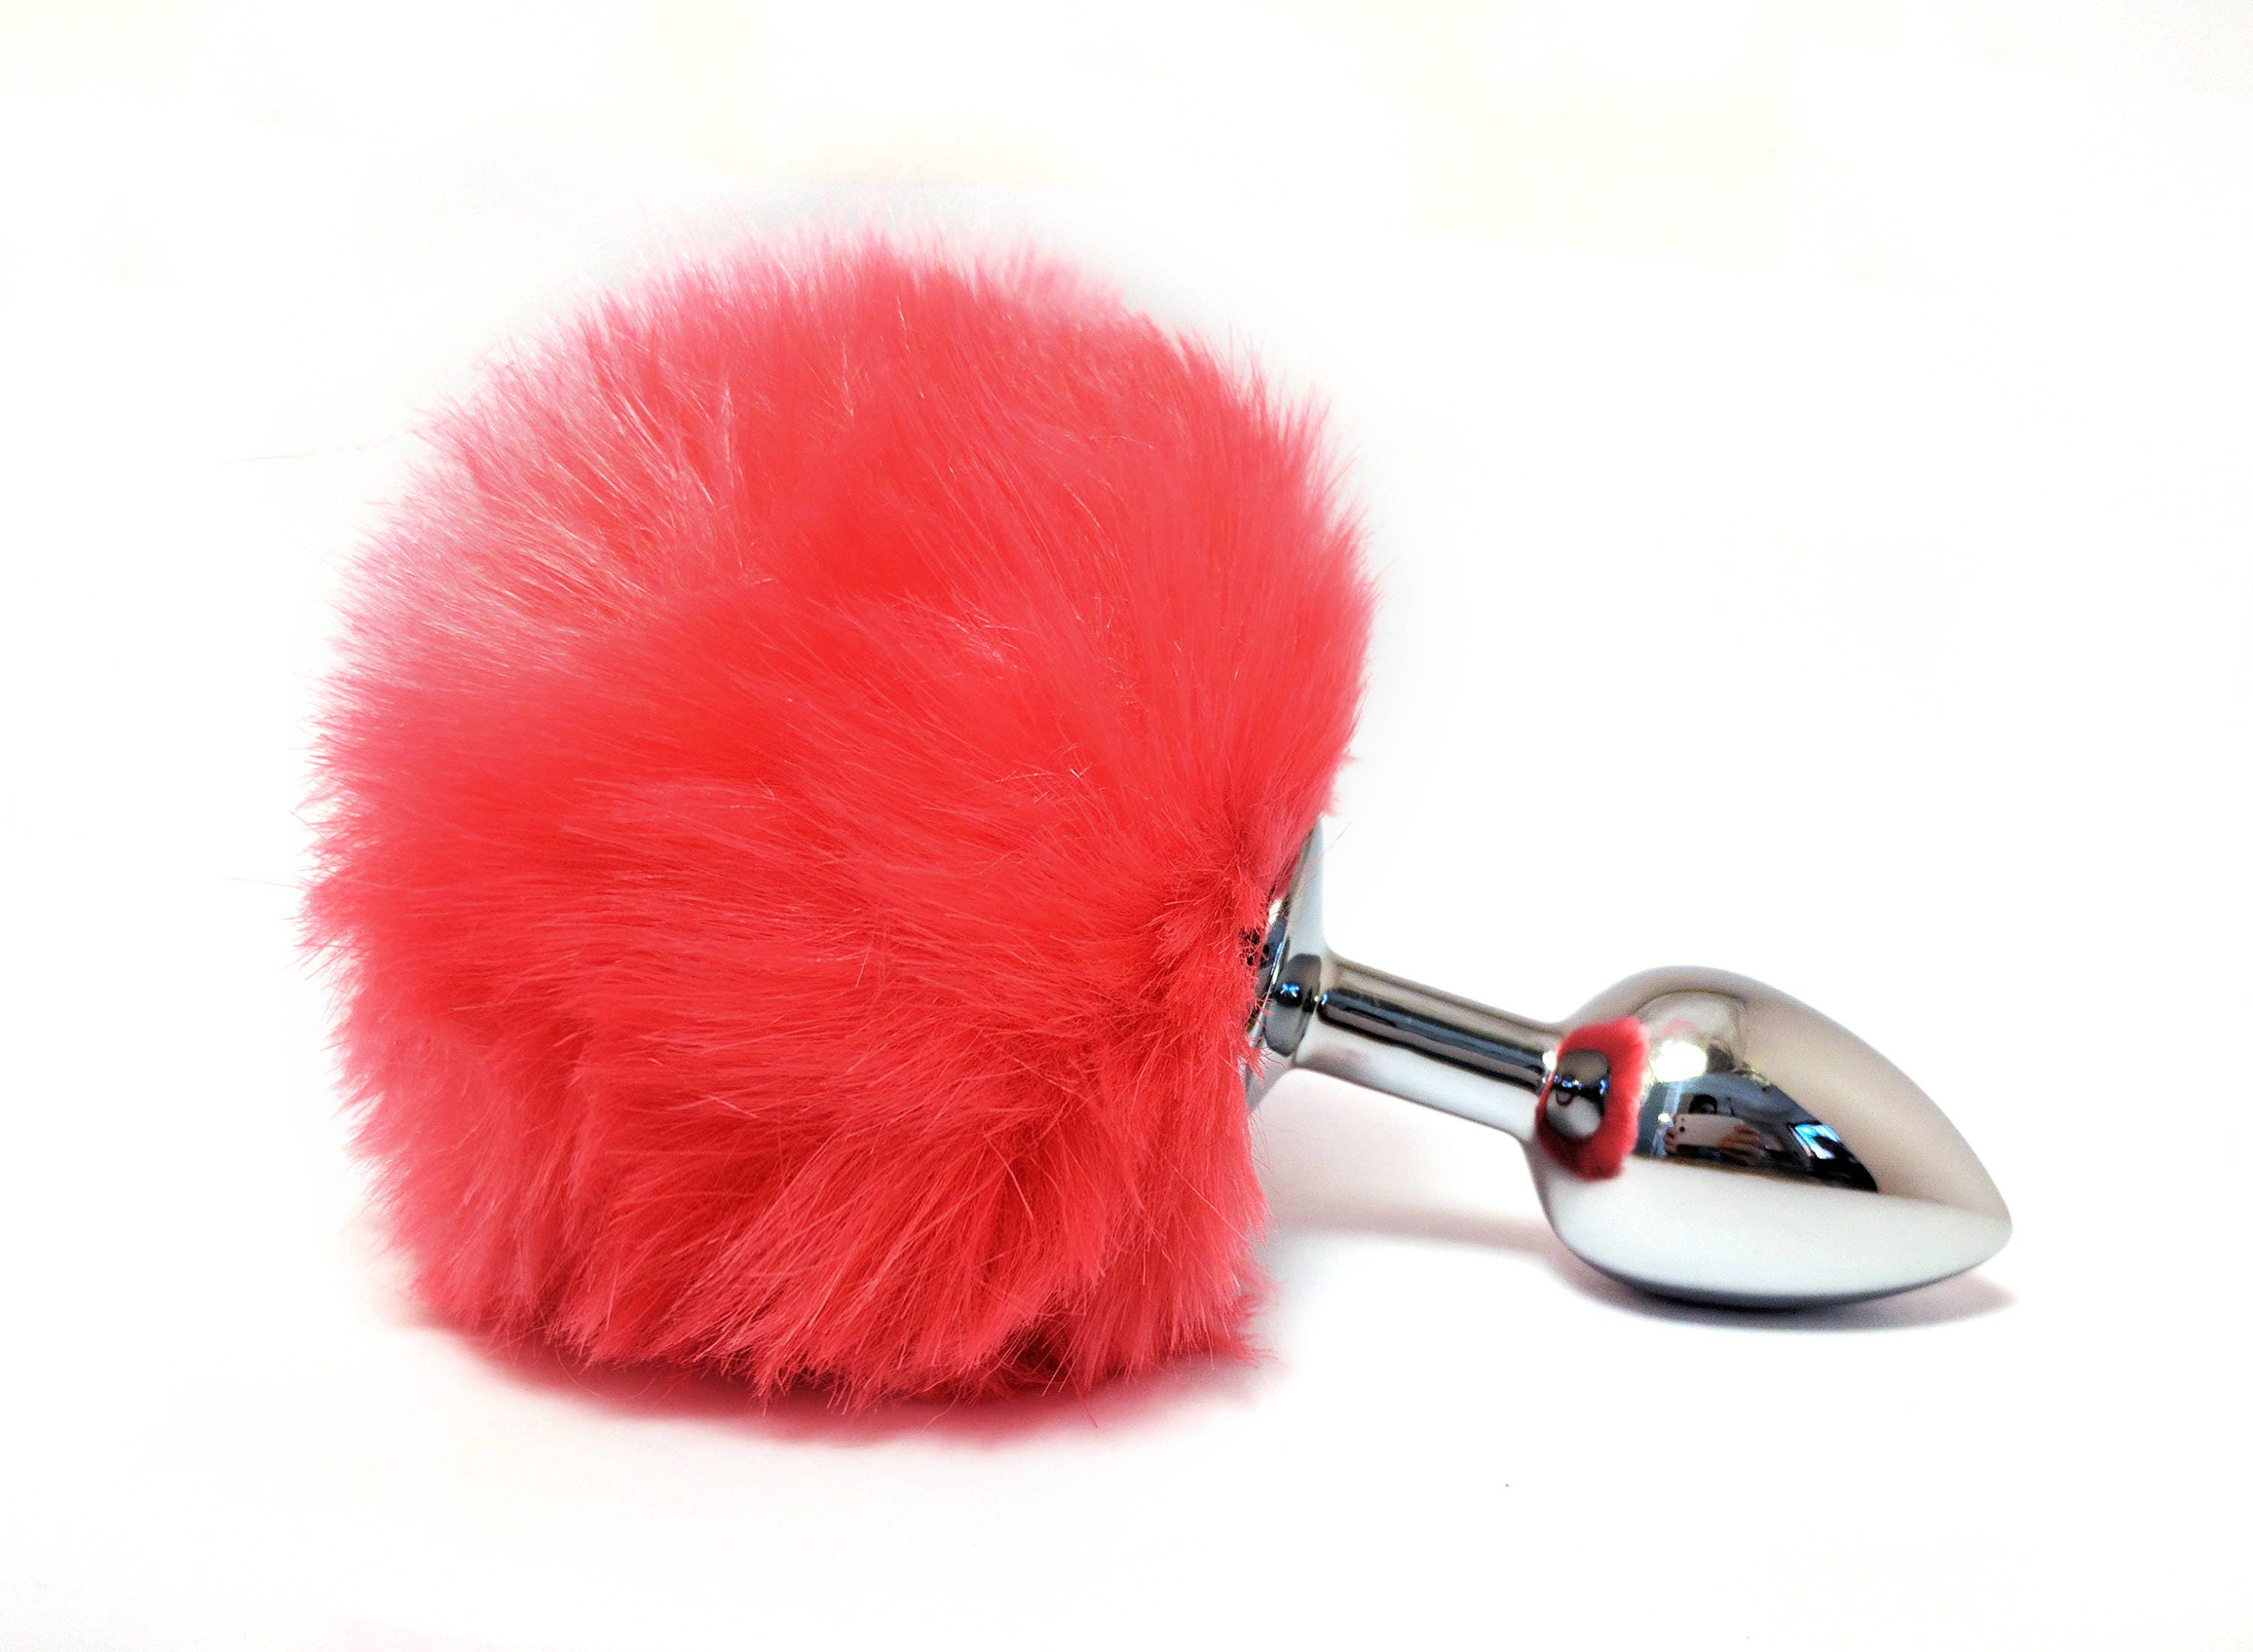 Hot Pink Bunny Tail Butt Plug Anal Beads Pet Play Anal  Etsy-1896